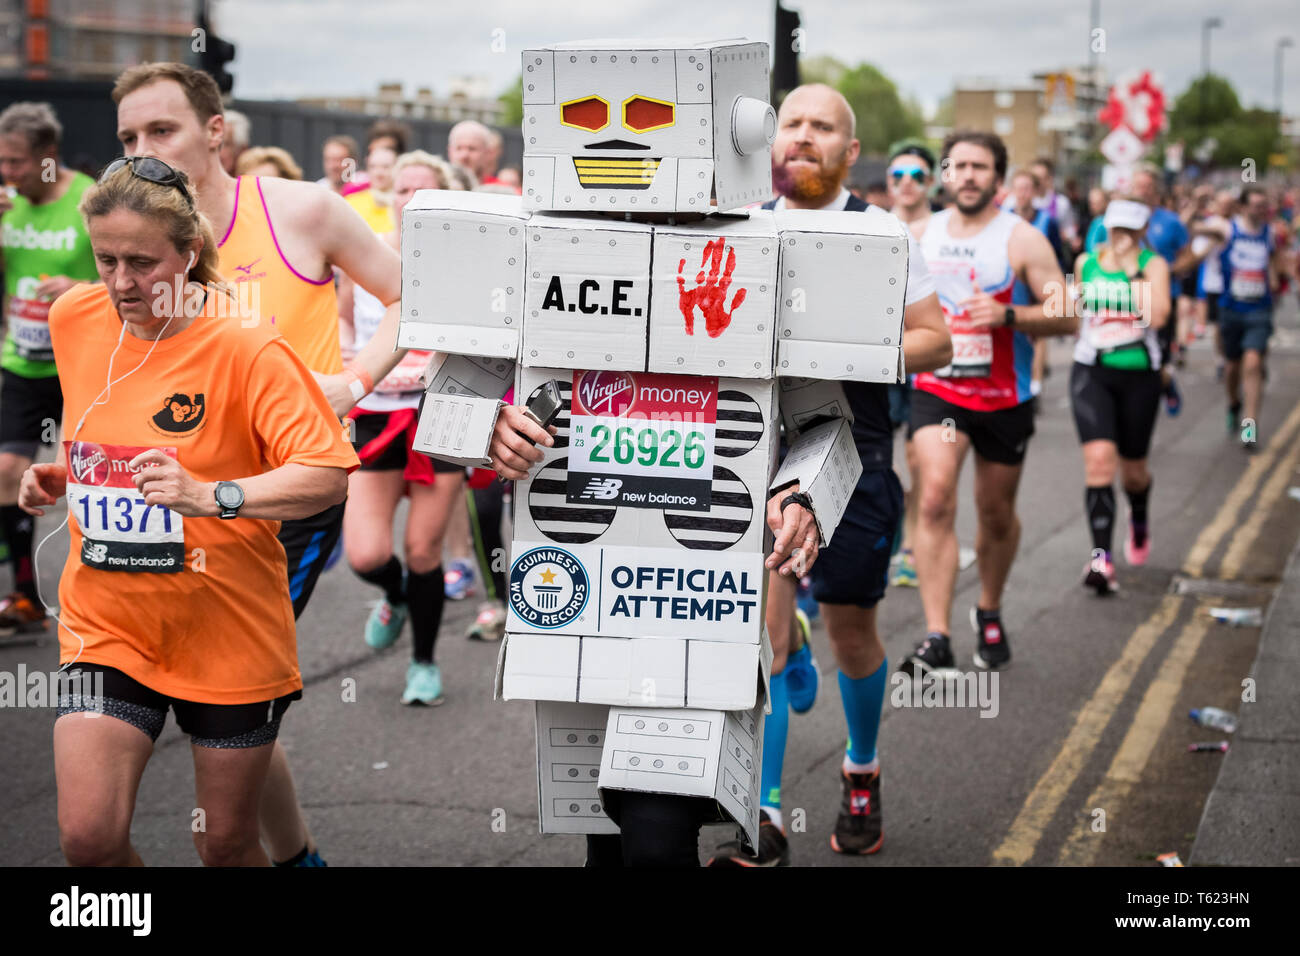 London, UK. 28th April, 2019. 39th London Marathon passes through Deptford's Evelyn Street in South East London, also the 8 mile mark of the 26.2 mile course where runners are greeted and cheered on by local residents. Credit: Guy Corbishley/Alamy Live News Stock Photo